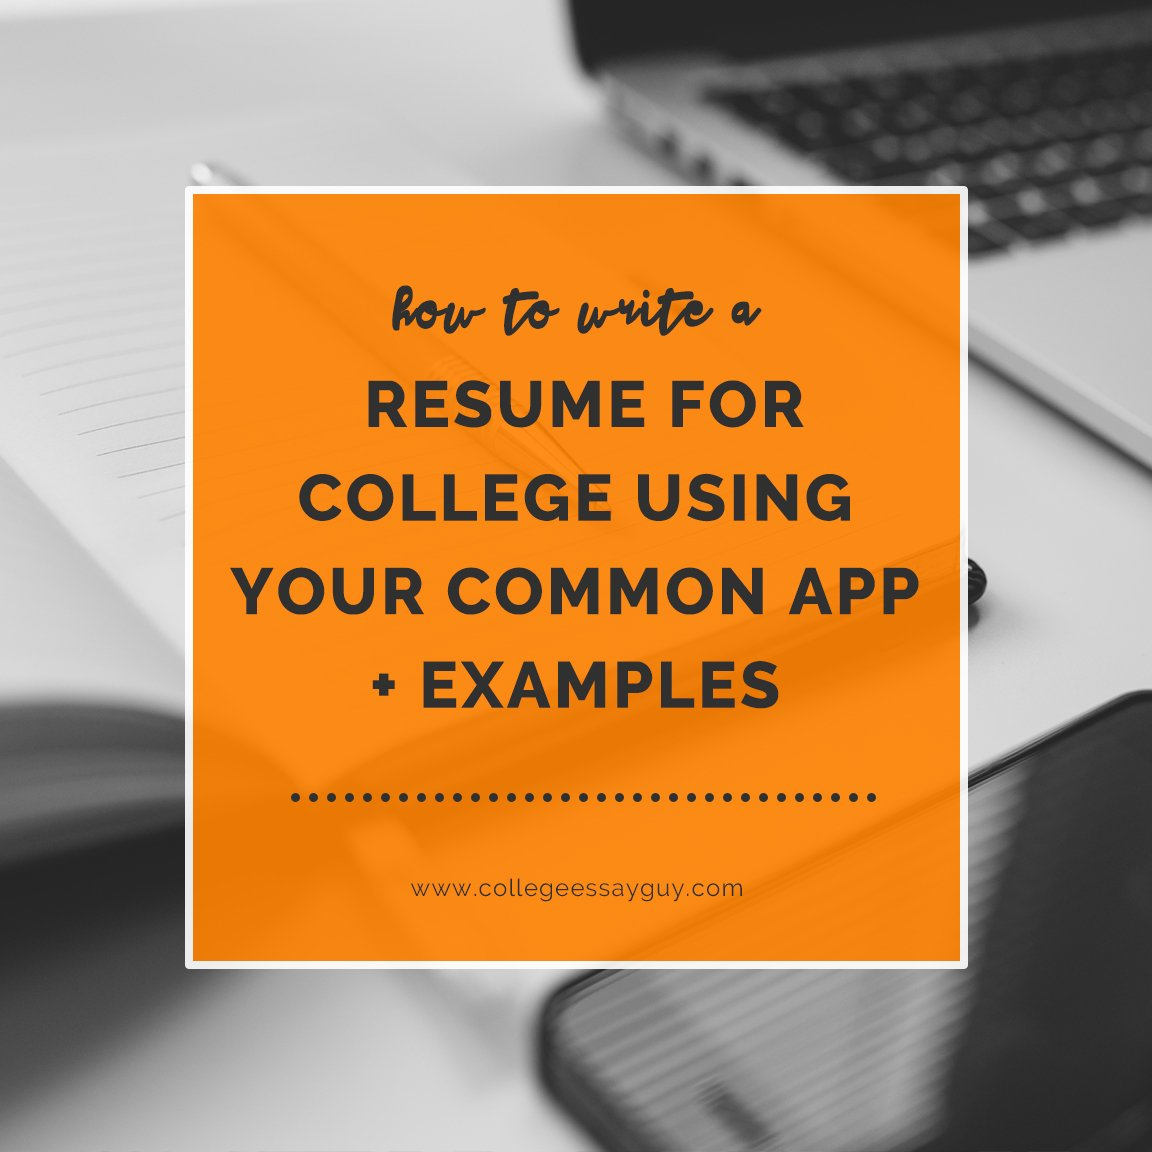 While many college applications do not require a resume (and many outright ban them), knowing how to write a resume for college using your Common App is an incredible time-saving move for a high school senior. Here's how to do it: goo.gl/XHdyMj